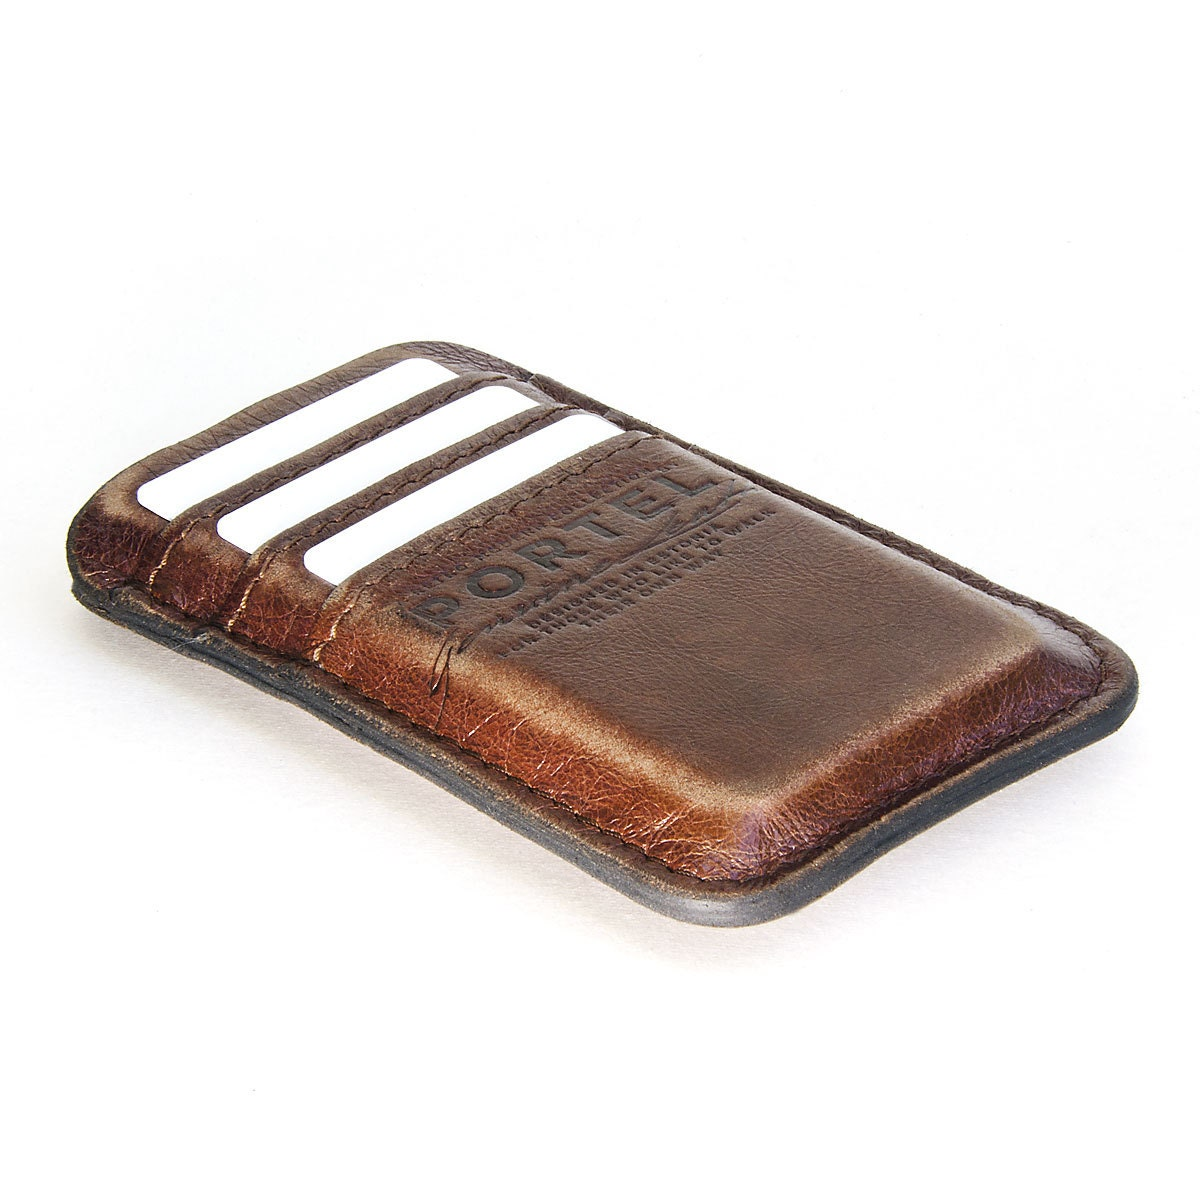 leather iphone 5 case show your with our top 5 iphone 5 cases business 3721